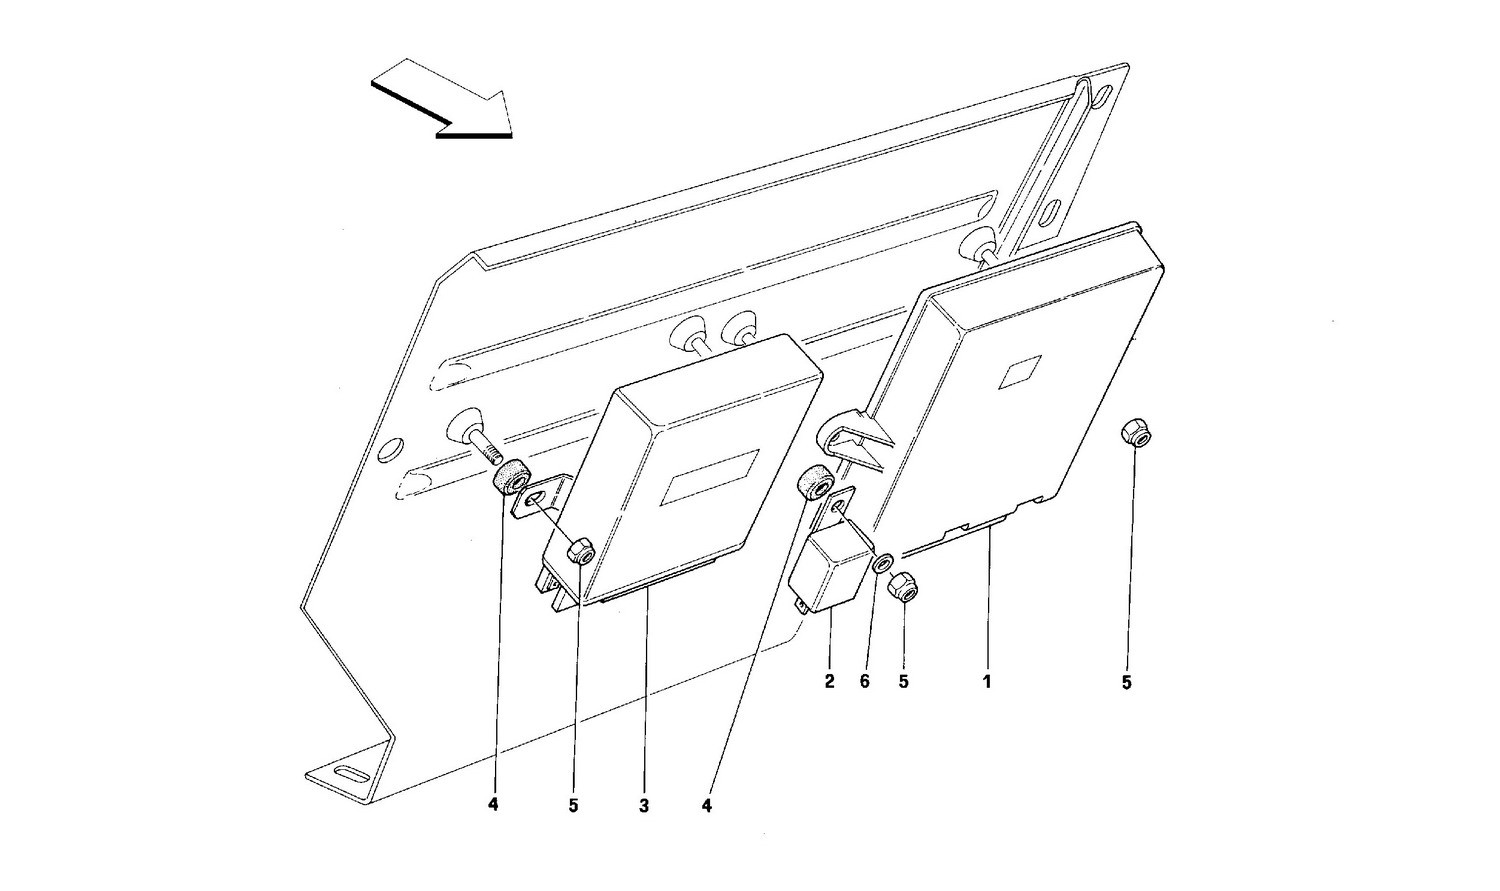 Switching units and devices for foot rest plate